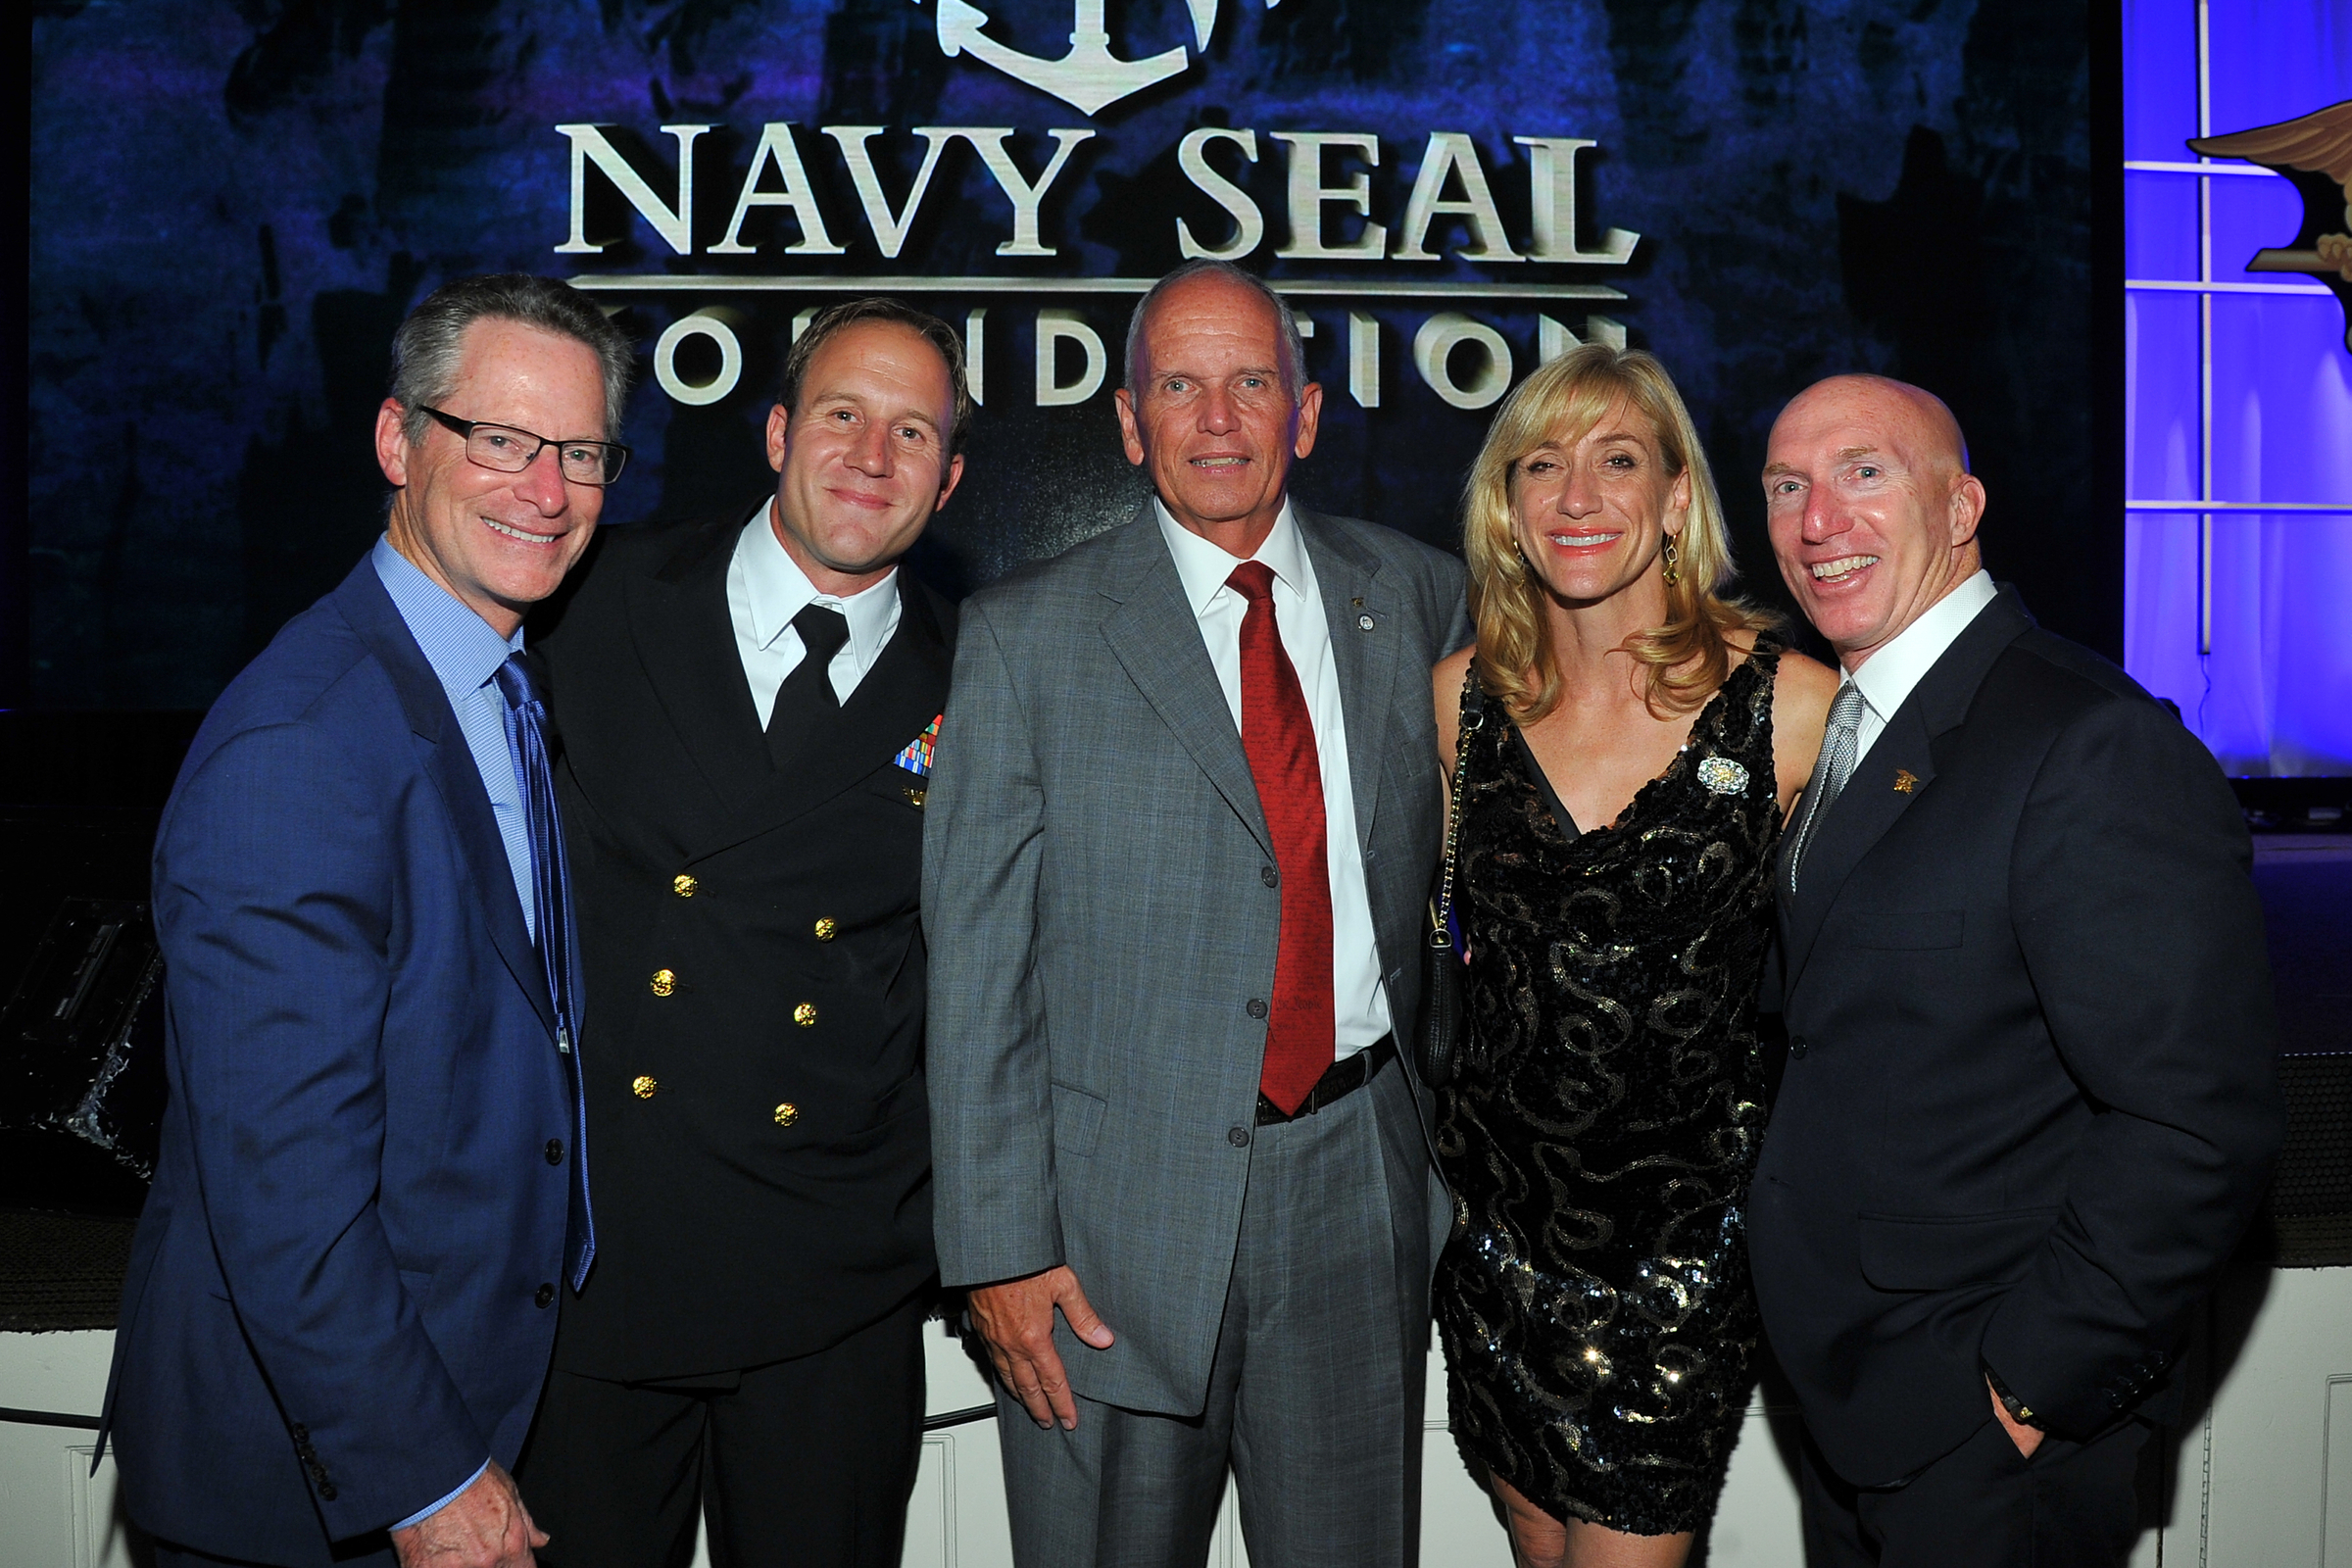 Scene from the Navy Seal Foundation 2015 Evening of Tribute on November 15, 2015 in Beverly Hills, CA. (Vince Bucci Photography).